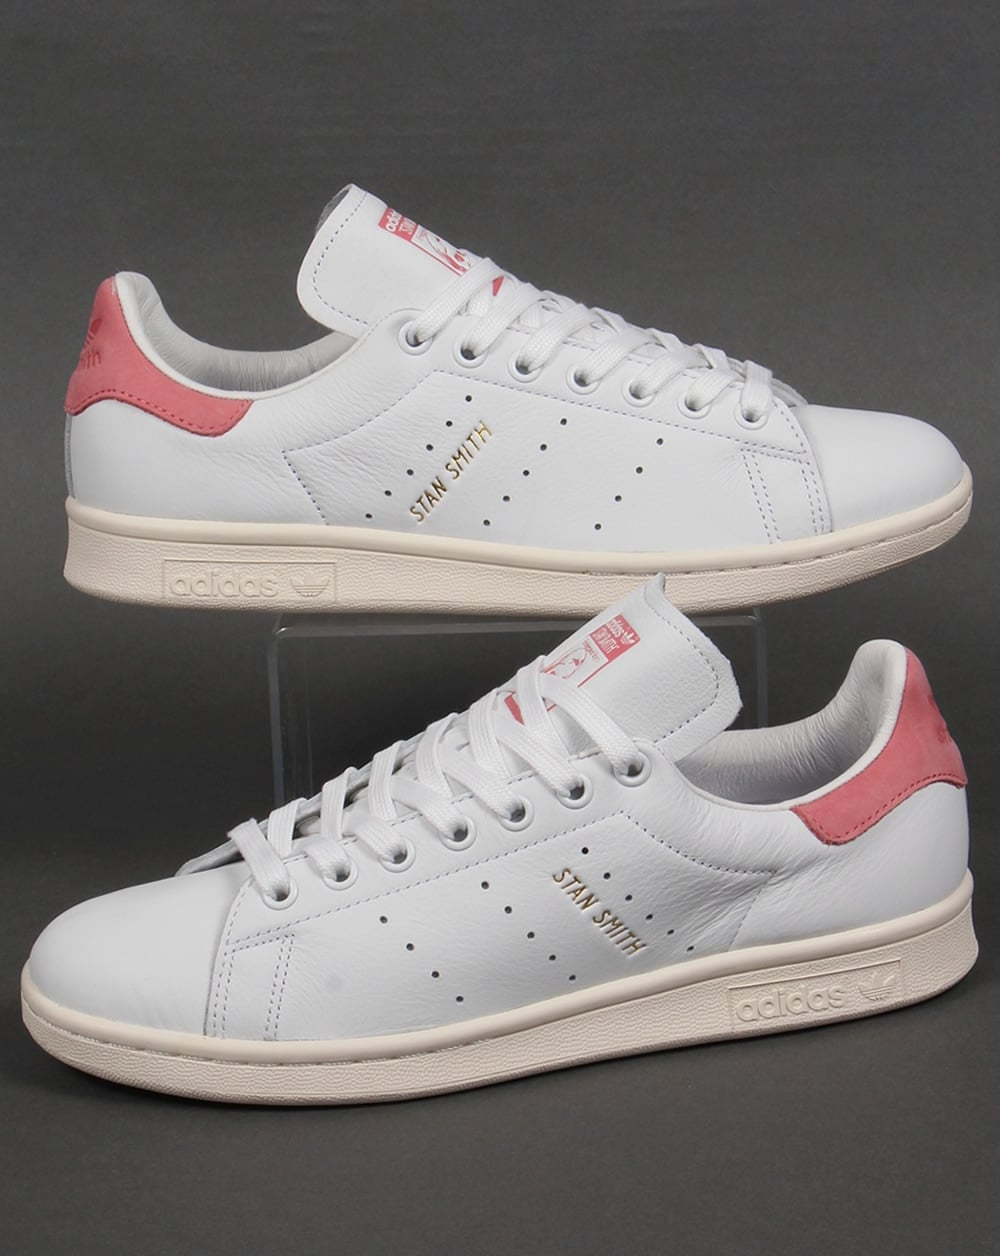 Adidas Stan Smith Casual Shoes For Women